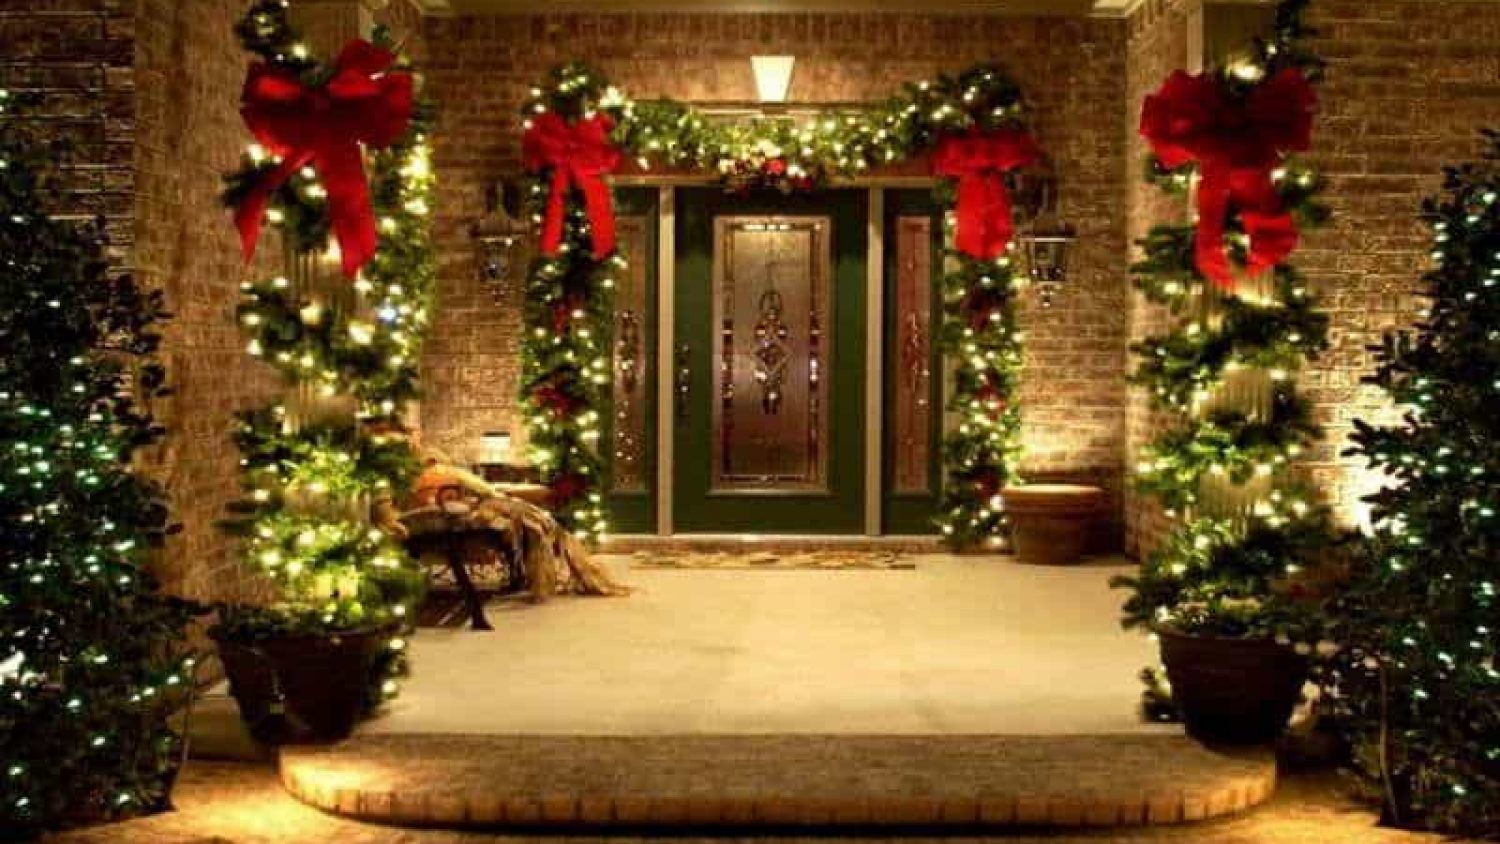 30+ Christmas Garden Ideas to Bring the Festive Spirit to Your Yard